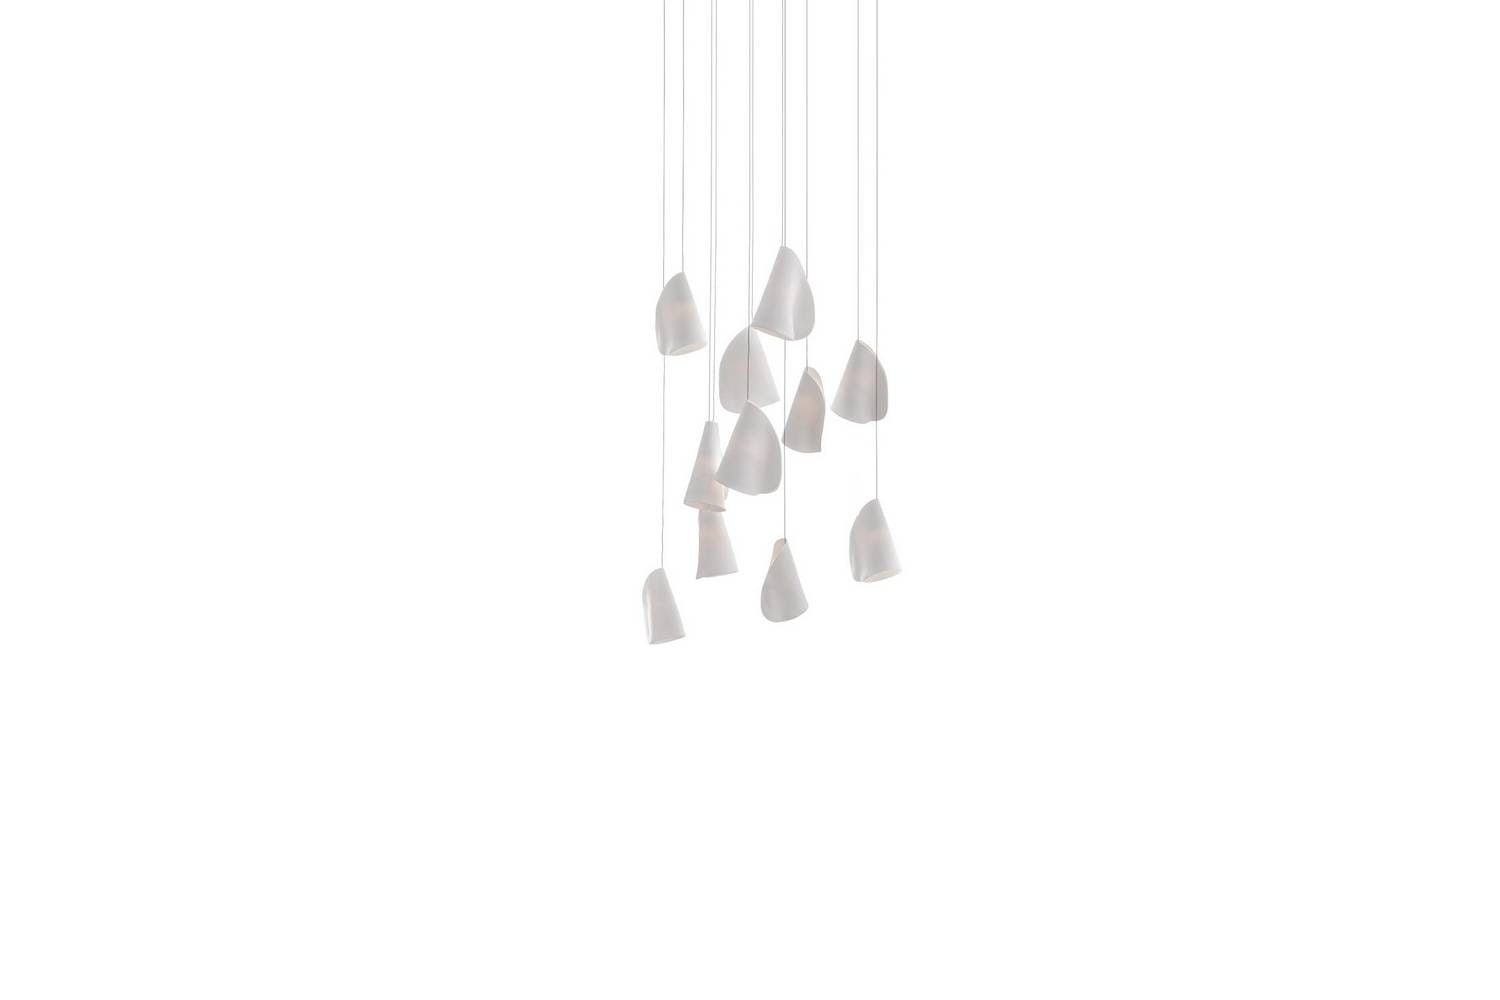 21.11 Suspension Lamp by Omer Arbel for Bocci